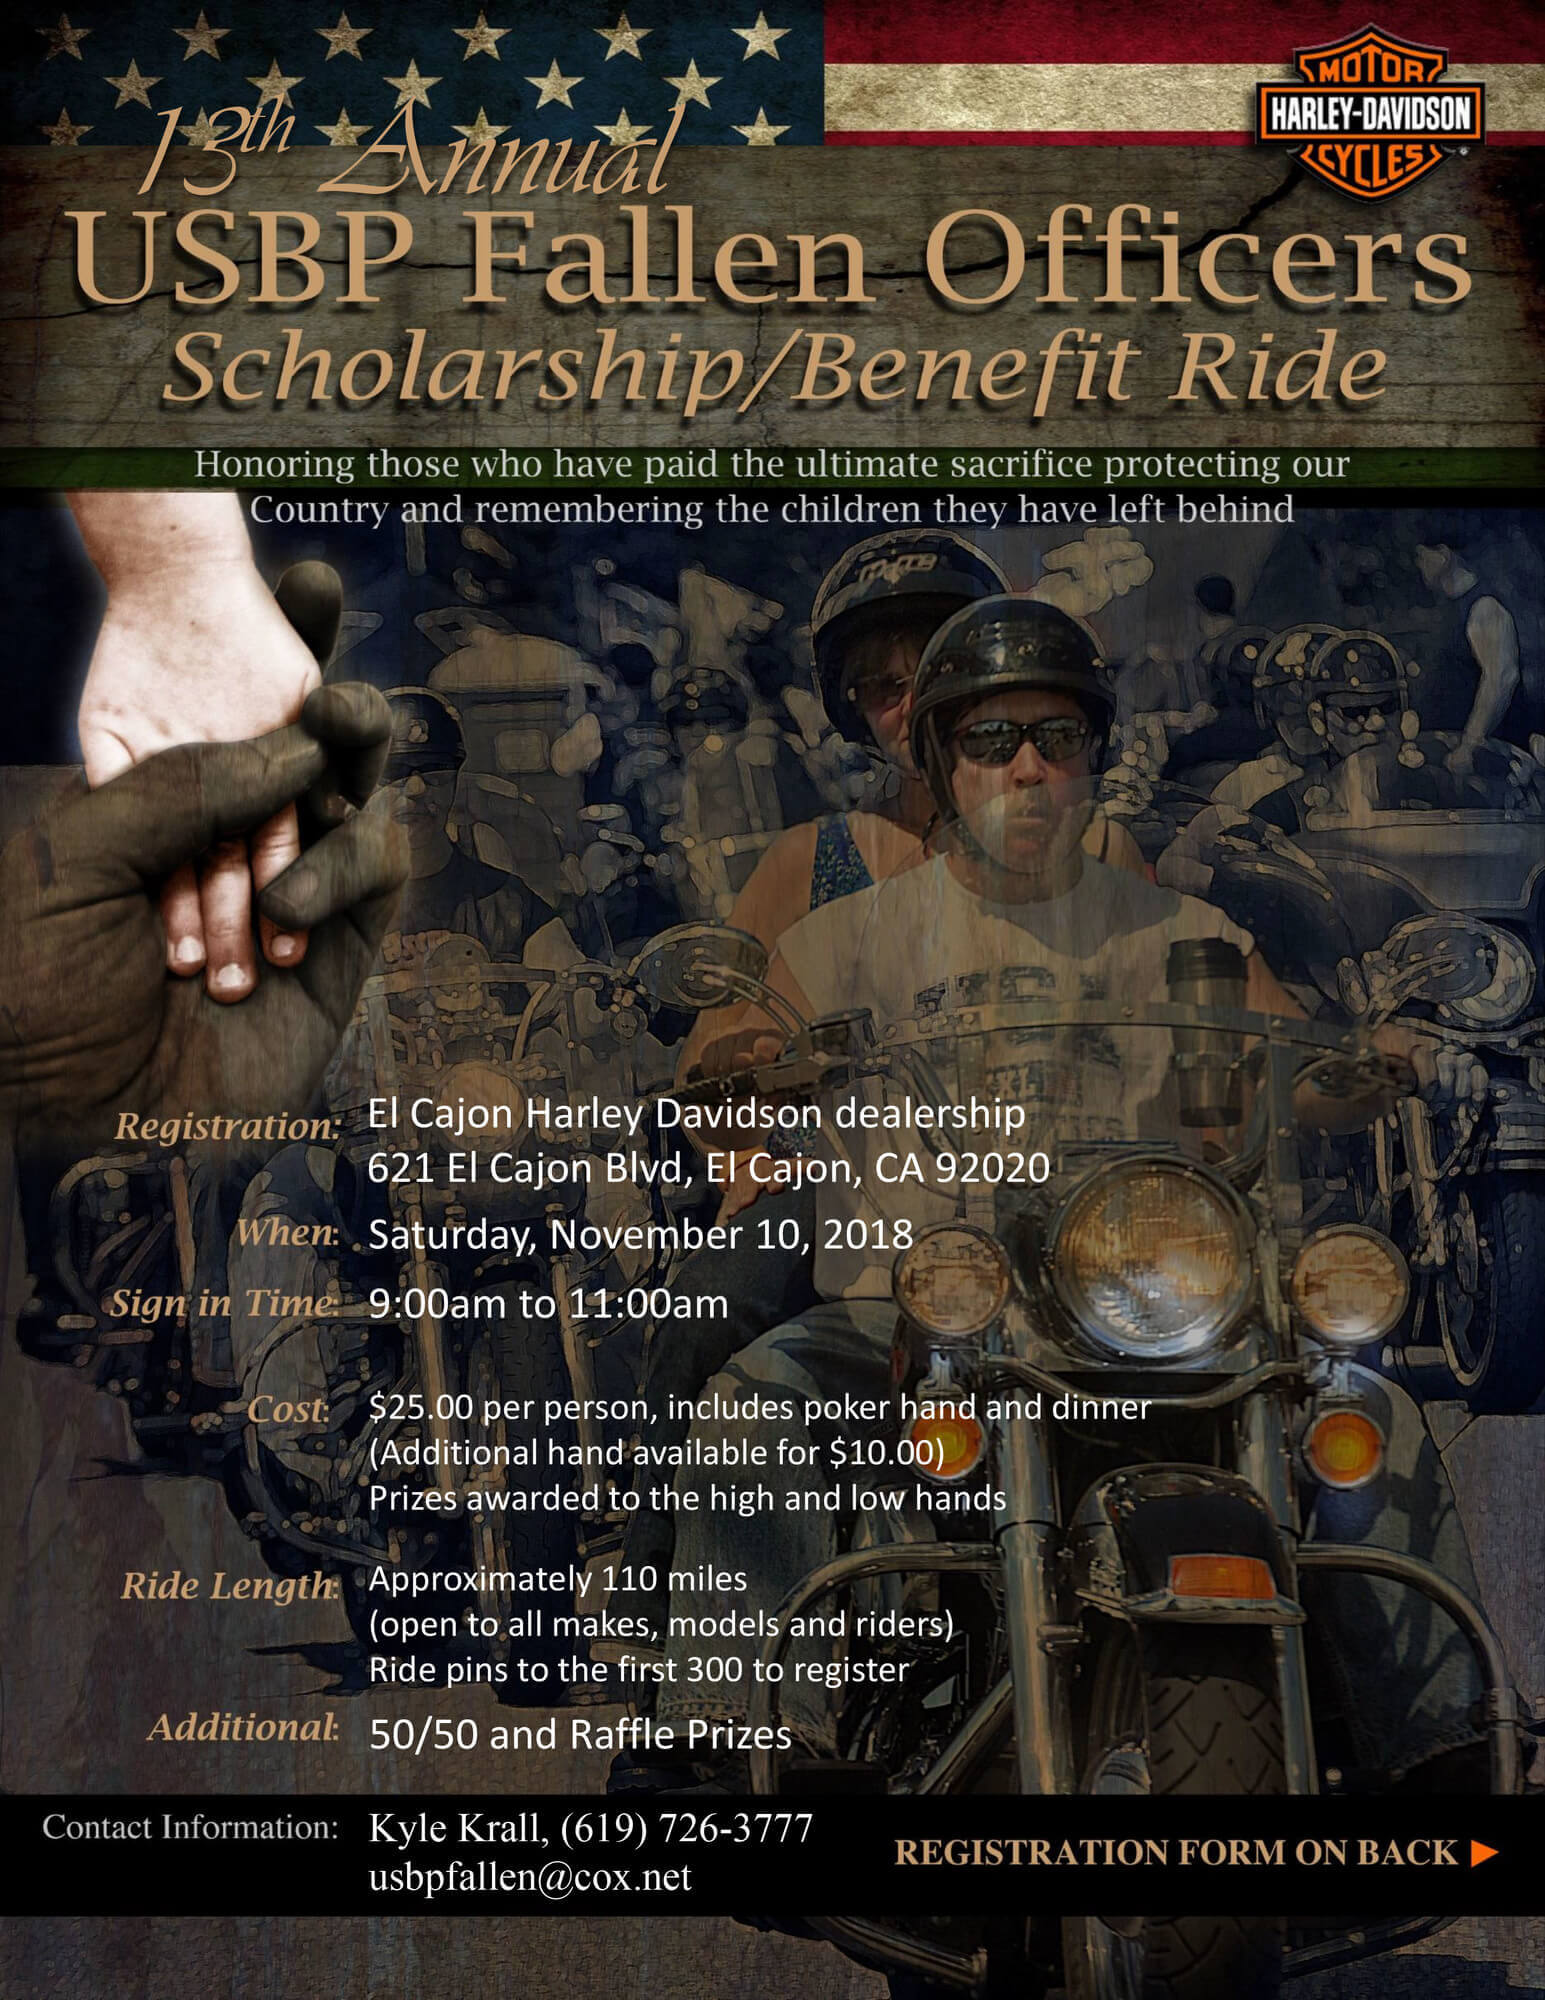 13th Annual USBP Fallen Officers Scholarship/Benefit Ride